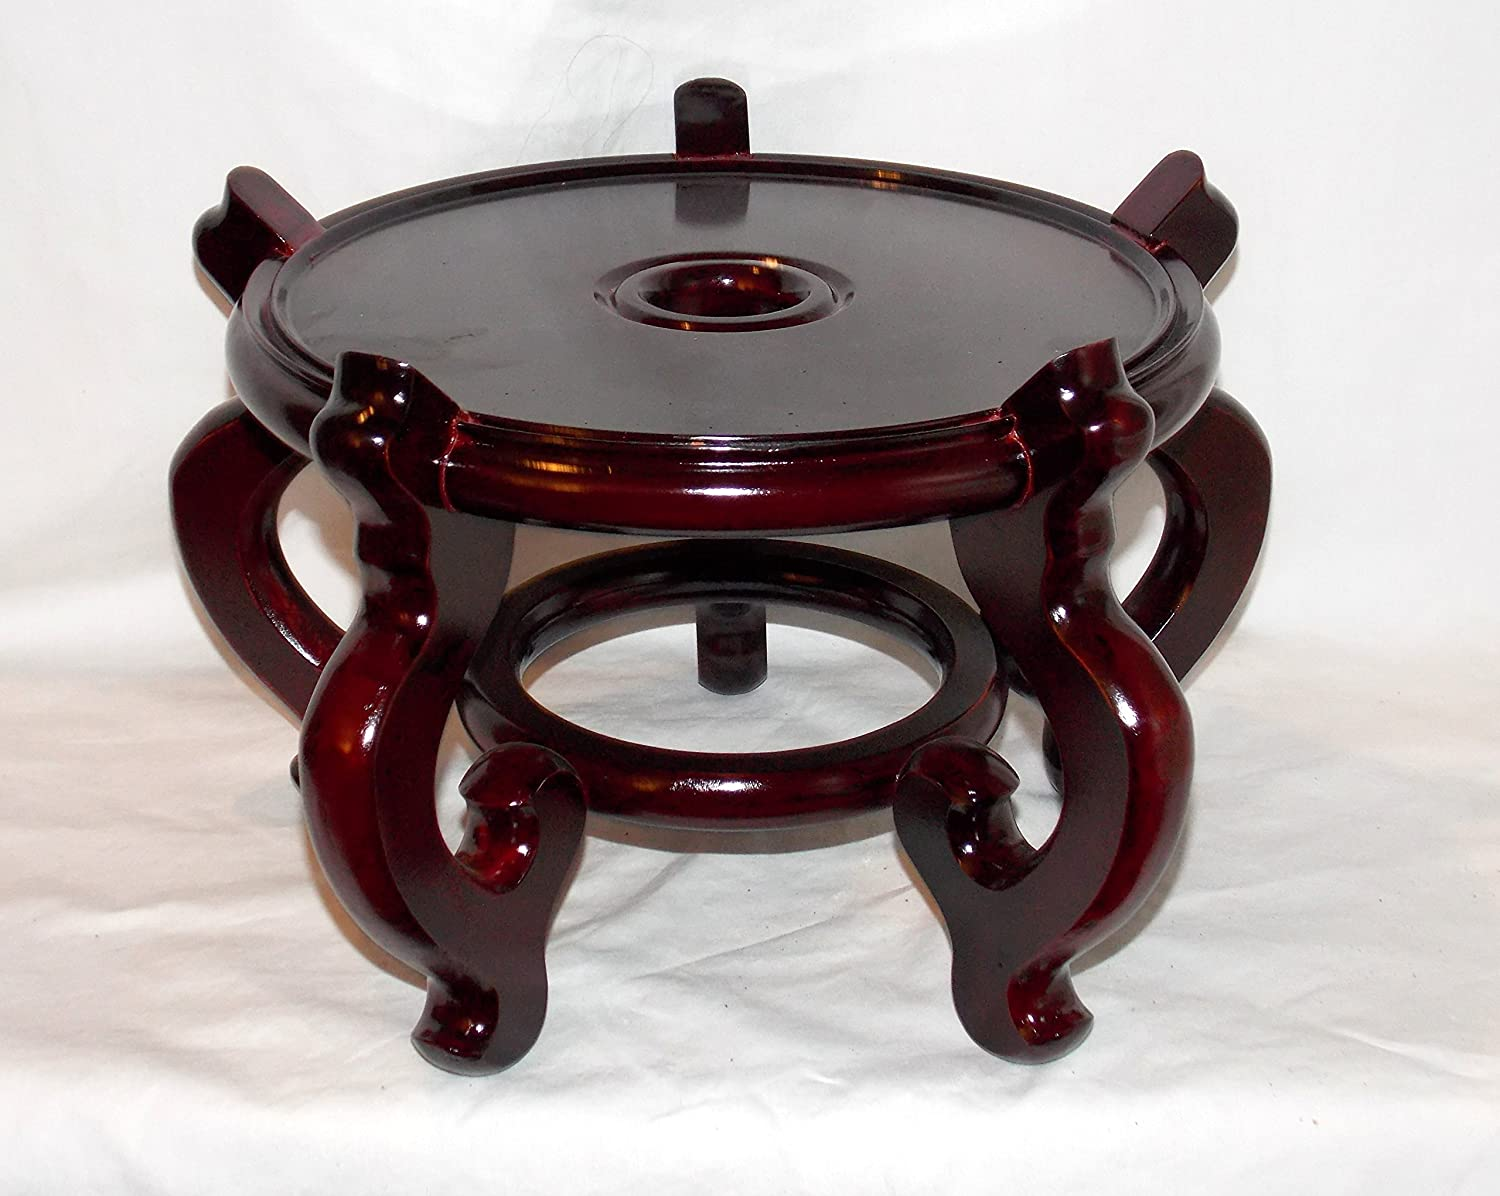 """NEW 9.5"""" DIAMETER x 8"""" TALL WOODEN ORIENTAL DARK CHERRY FISH BOWL PLANT STAND HOLDER QUALITY! (ON SALE NOW)"""